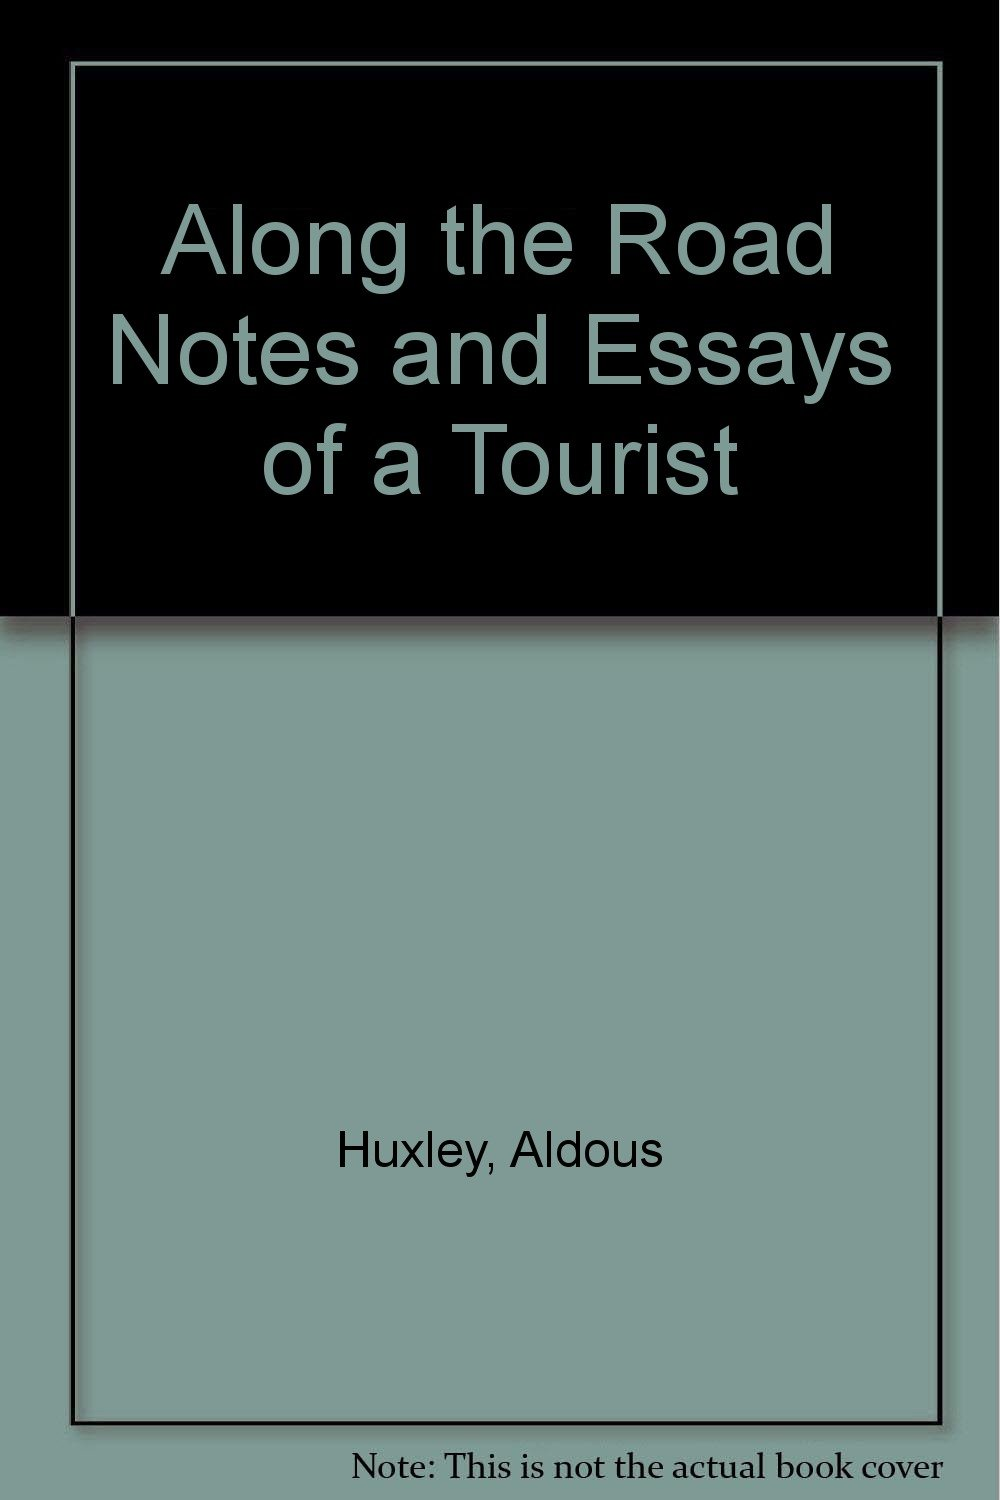 along the road notes and essays of a tourist essay index reprint along the road notes and essays of a tourist essay index reprint series aldous huxley 9780836922295 com books